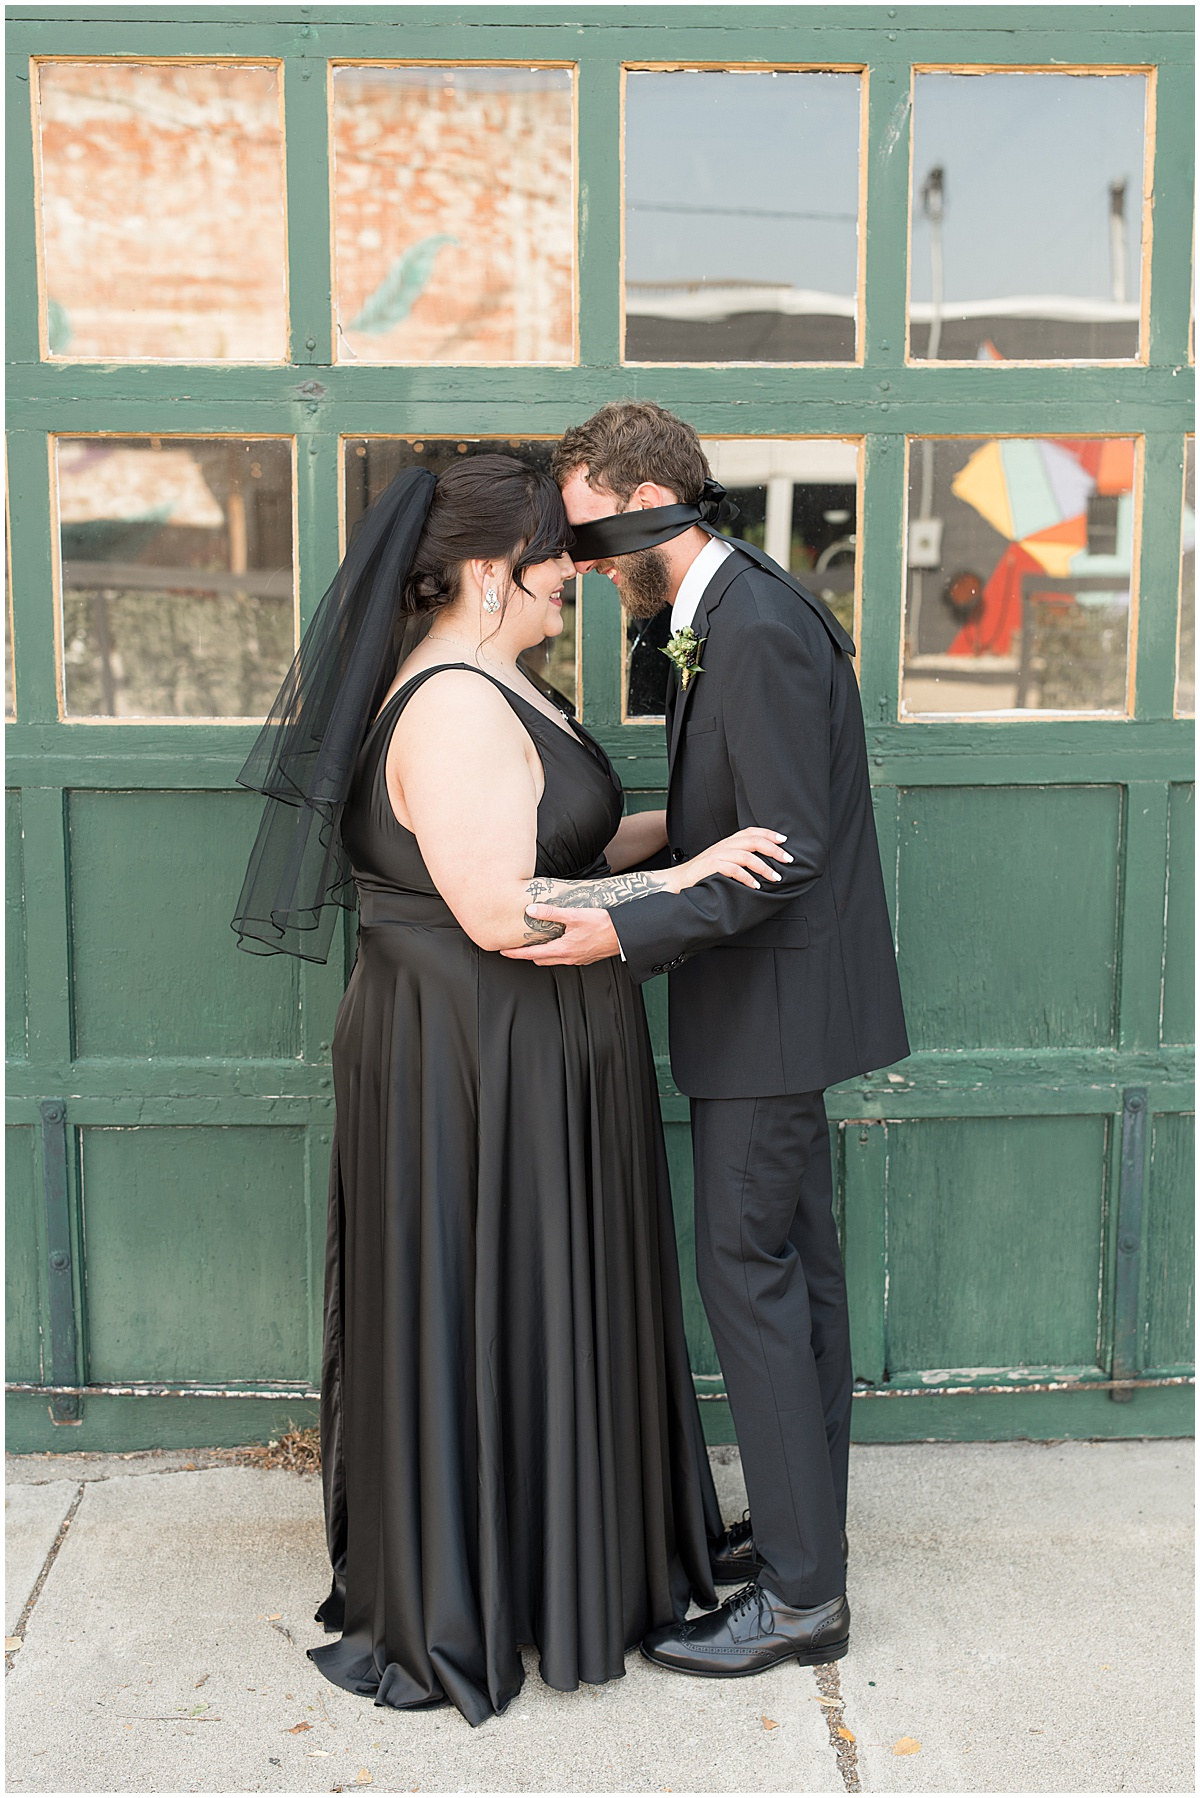 Groom blindfolded prayer with bride in Rensselaer, Indiana